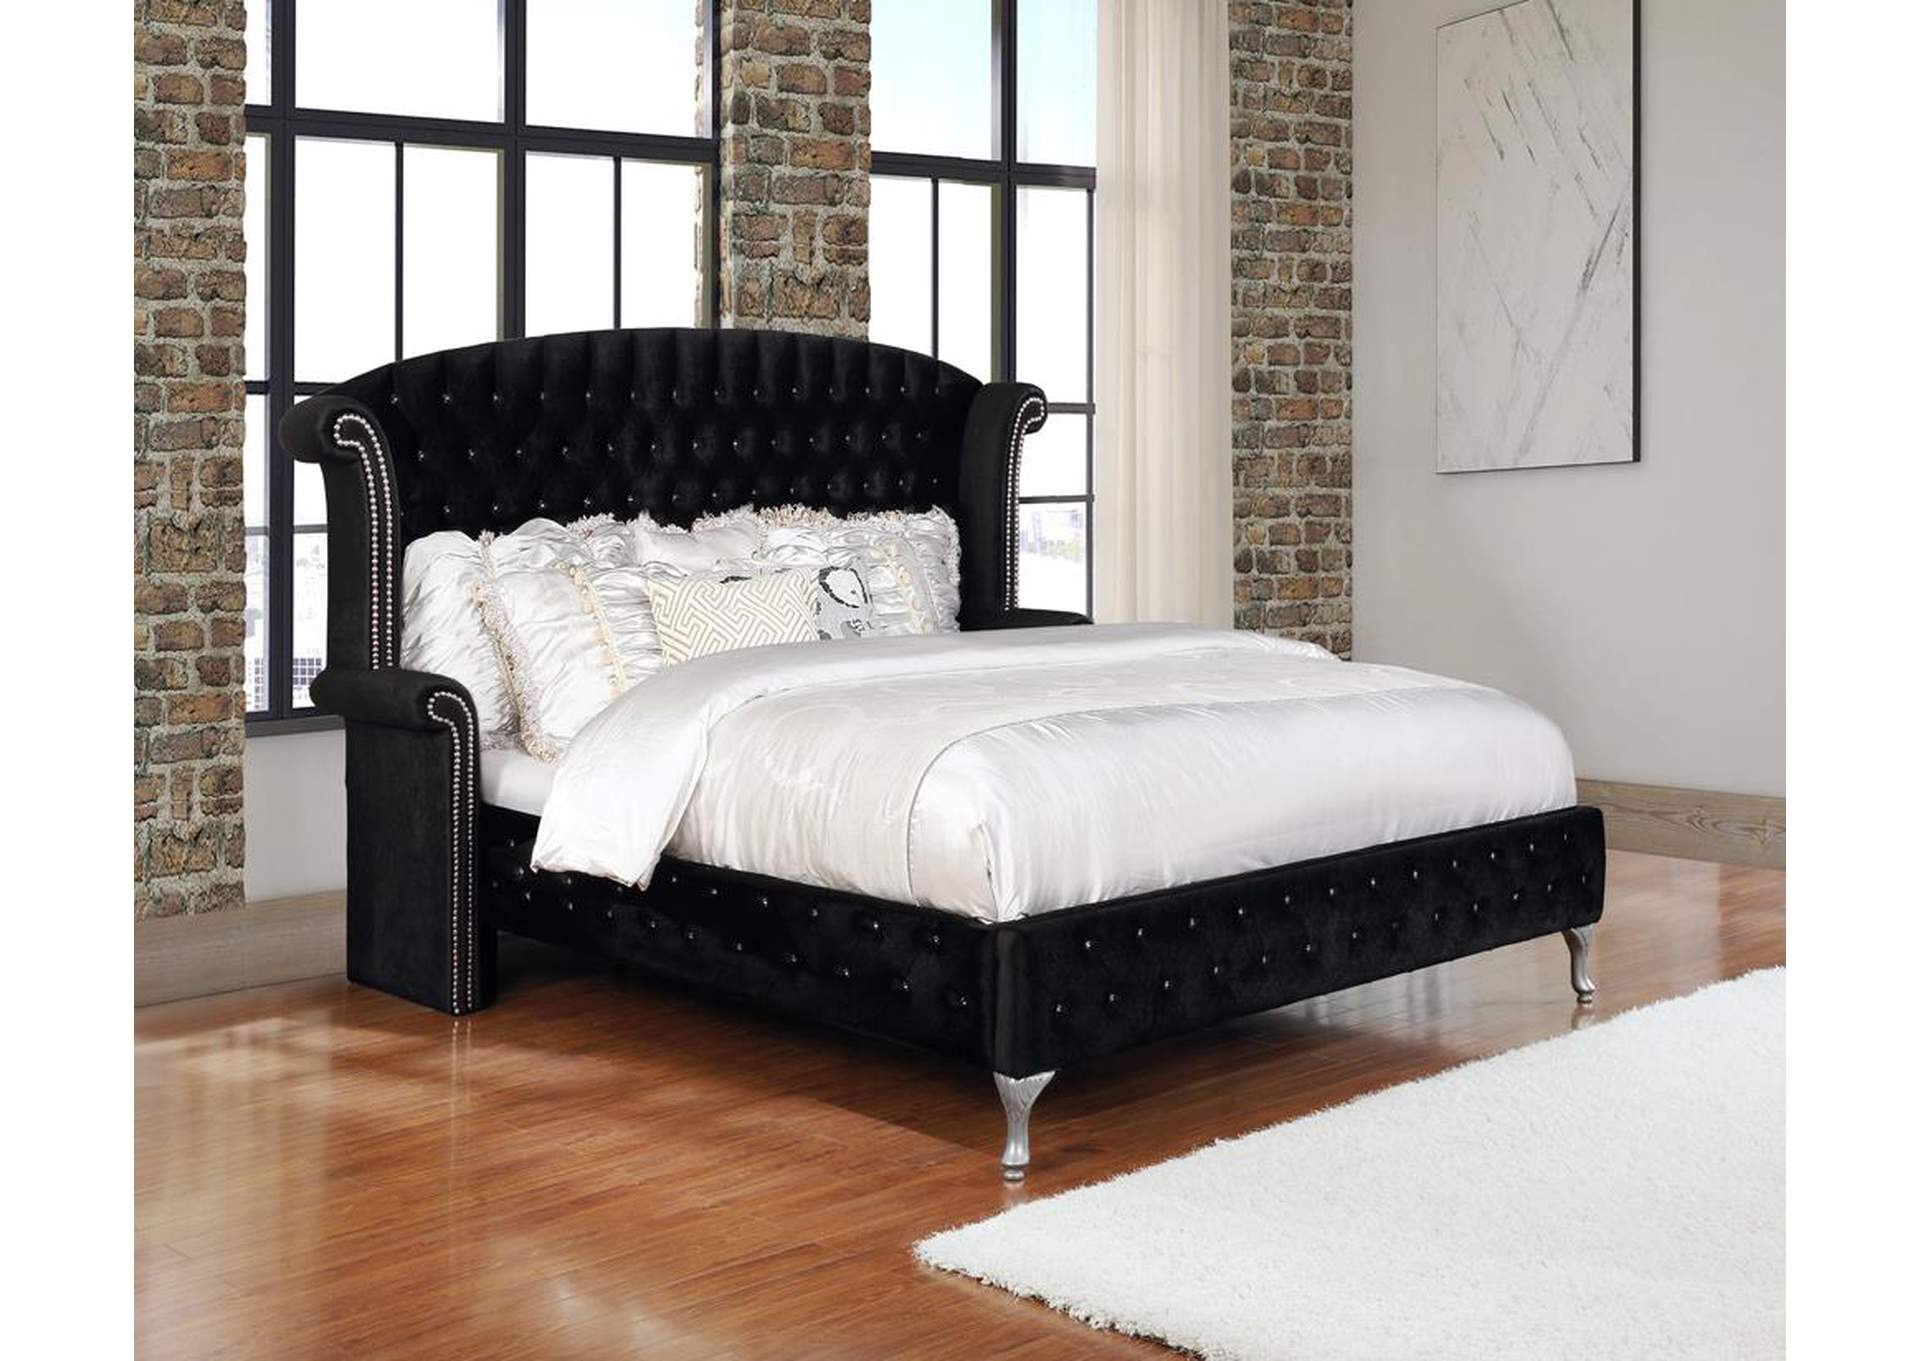 Cod Gray Deanna Contemporary Queen King Bed,Coaster Furniture